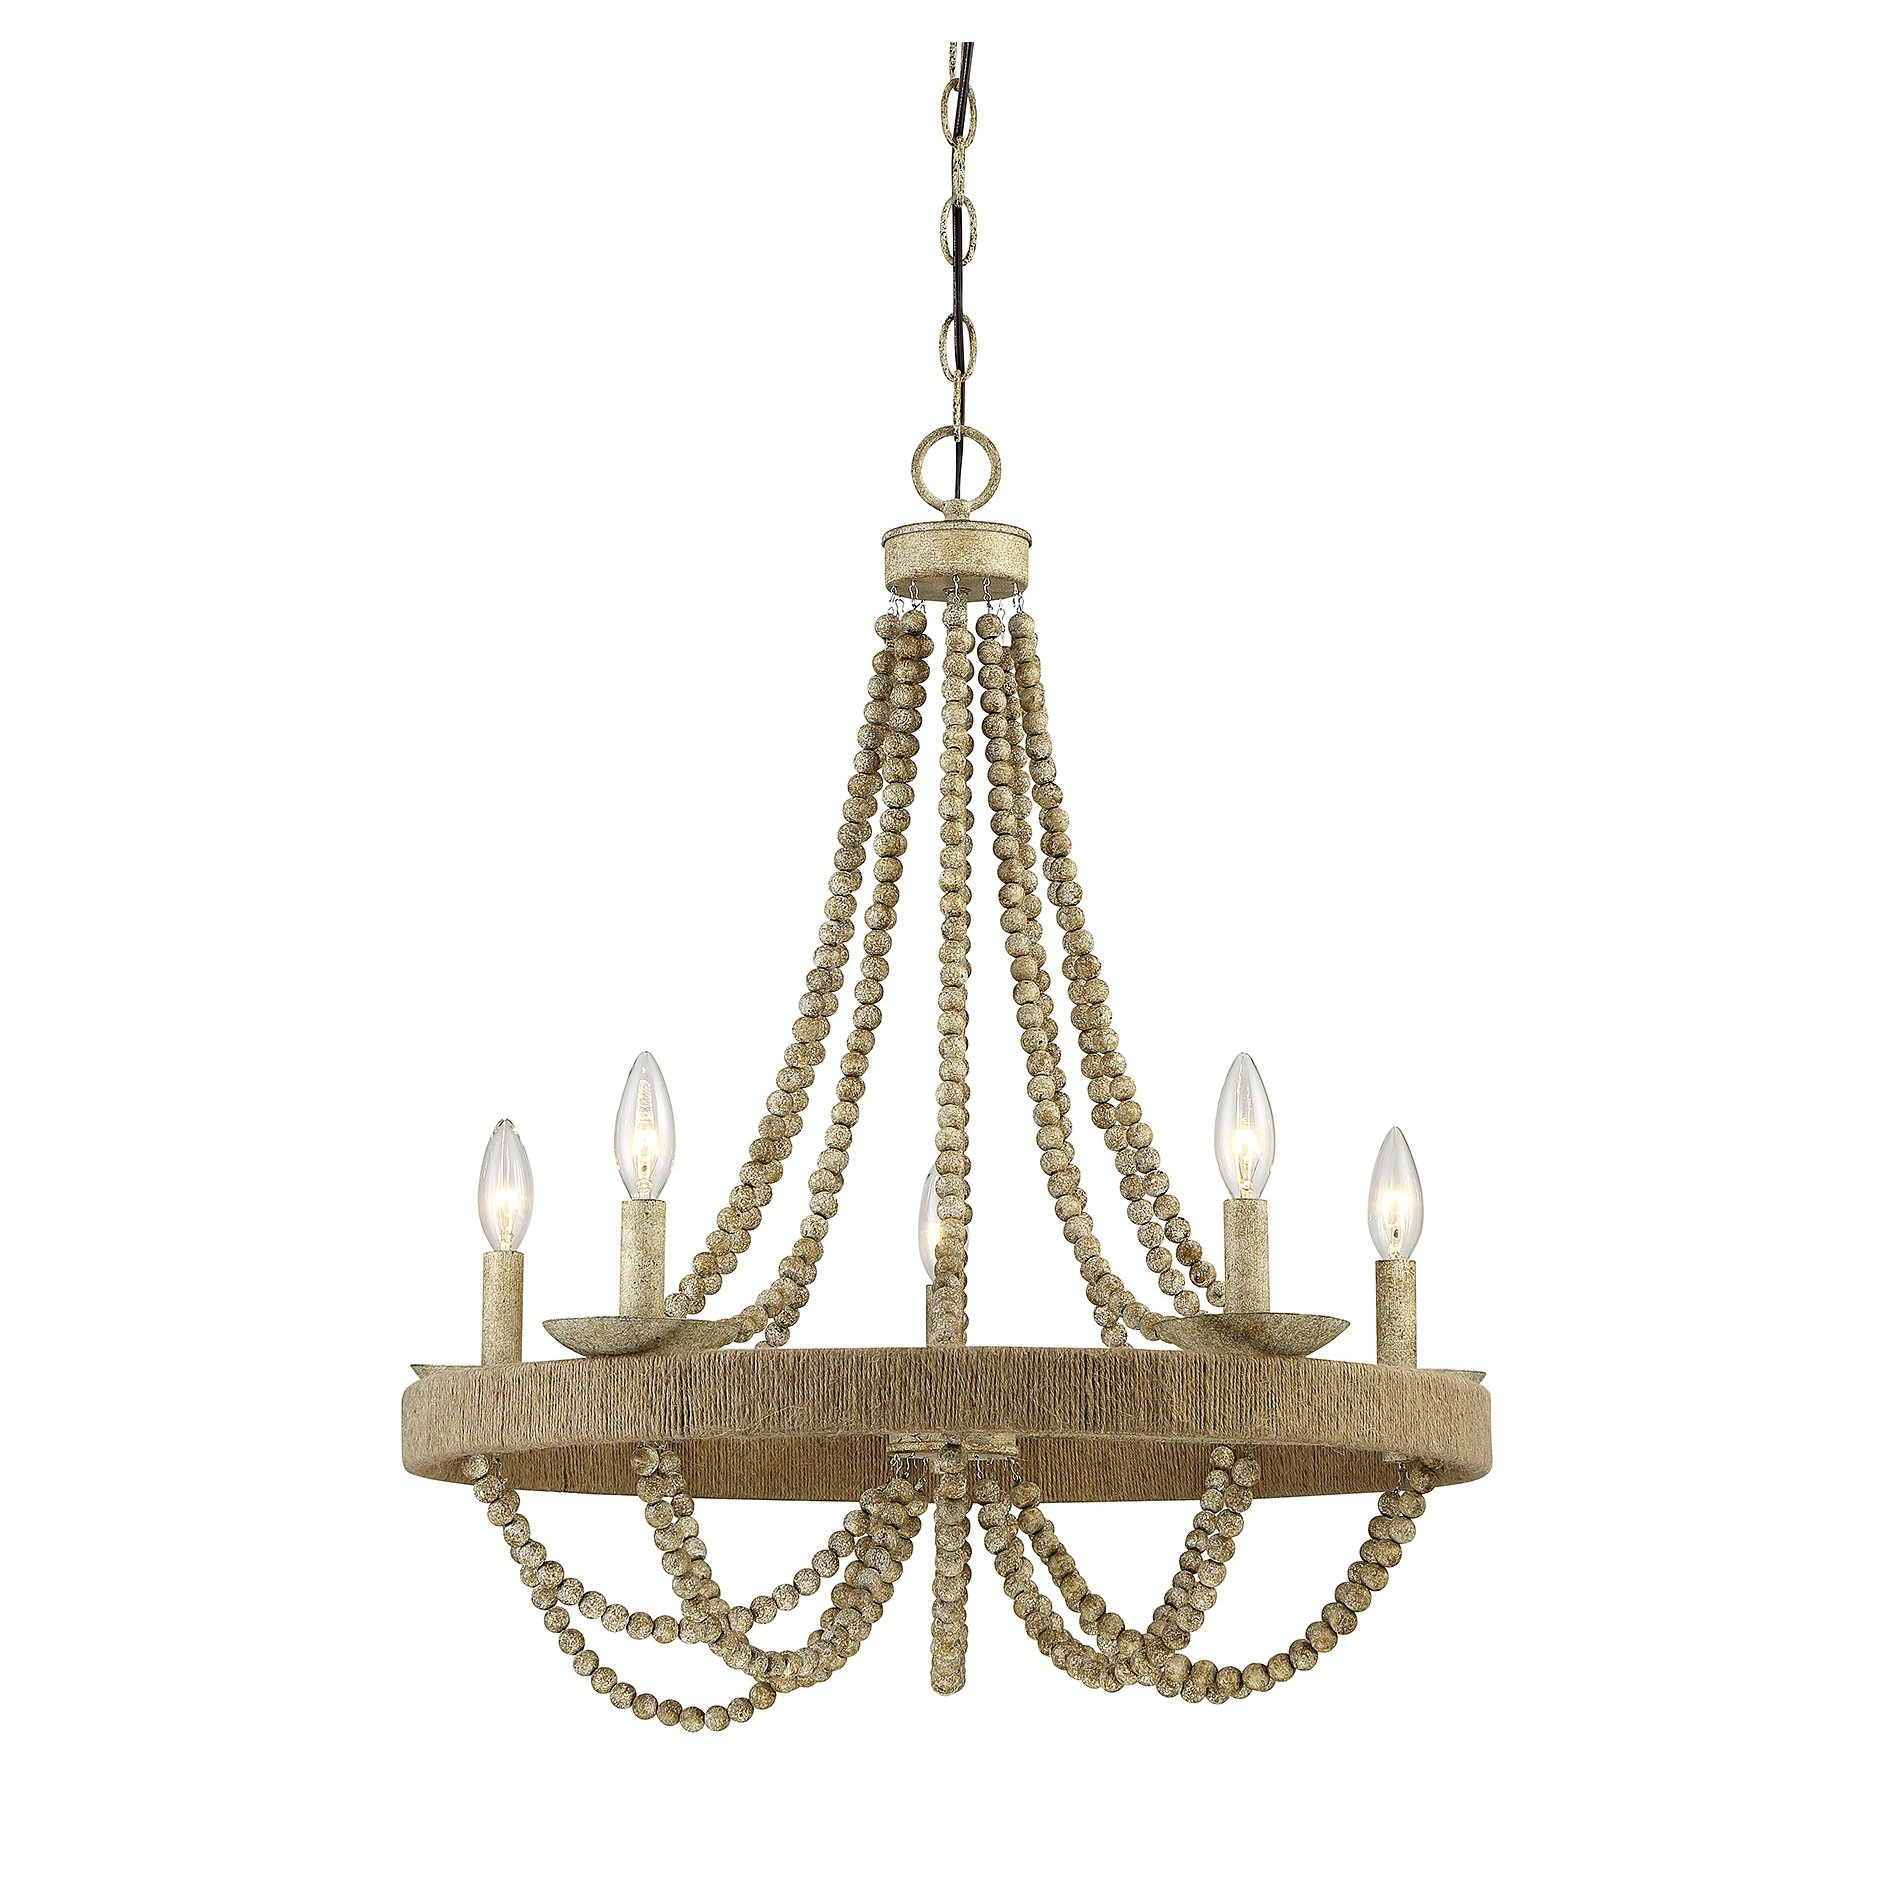 Lantieri 5 Light Candle Chandelier Reviews Joss Main Inside Candle Chandelier (Image 10 of 15)